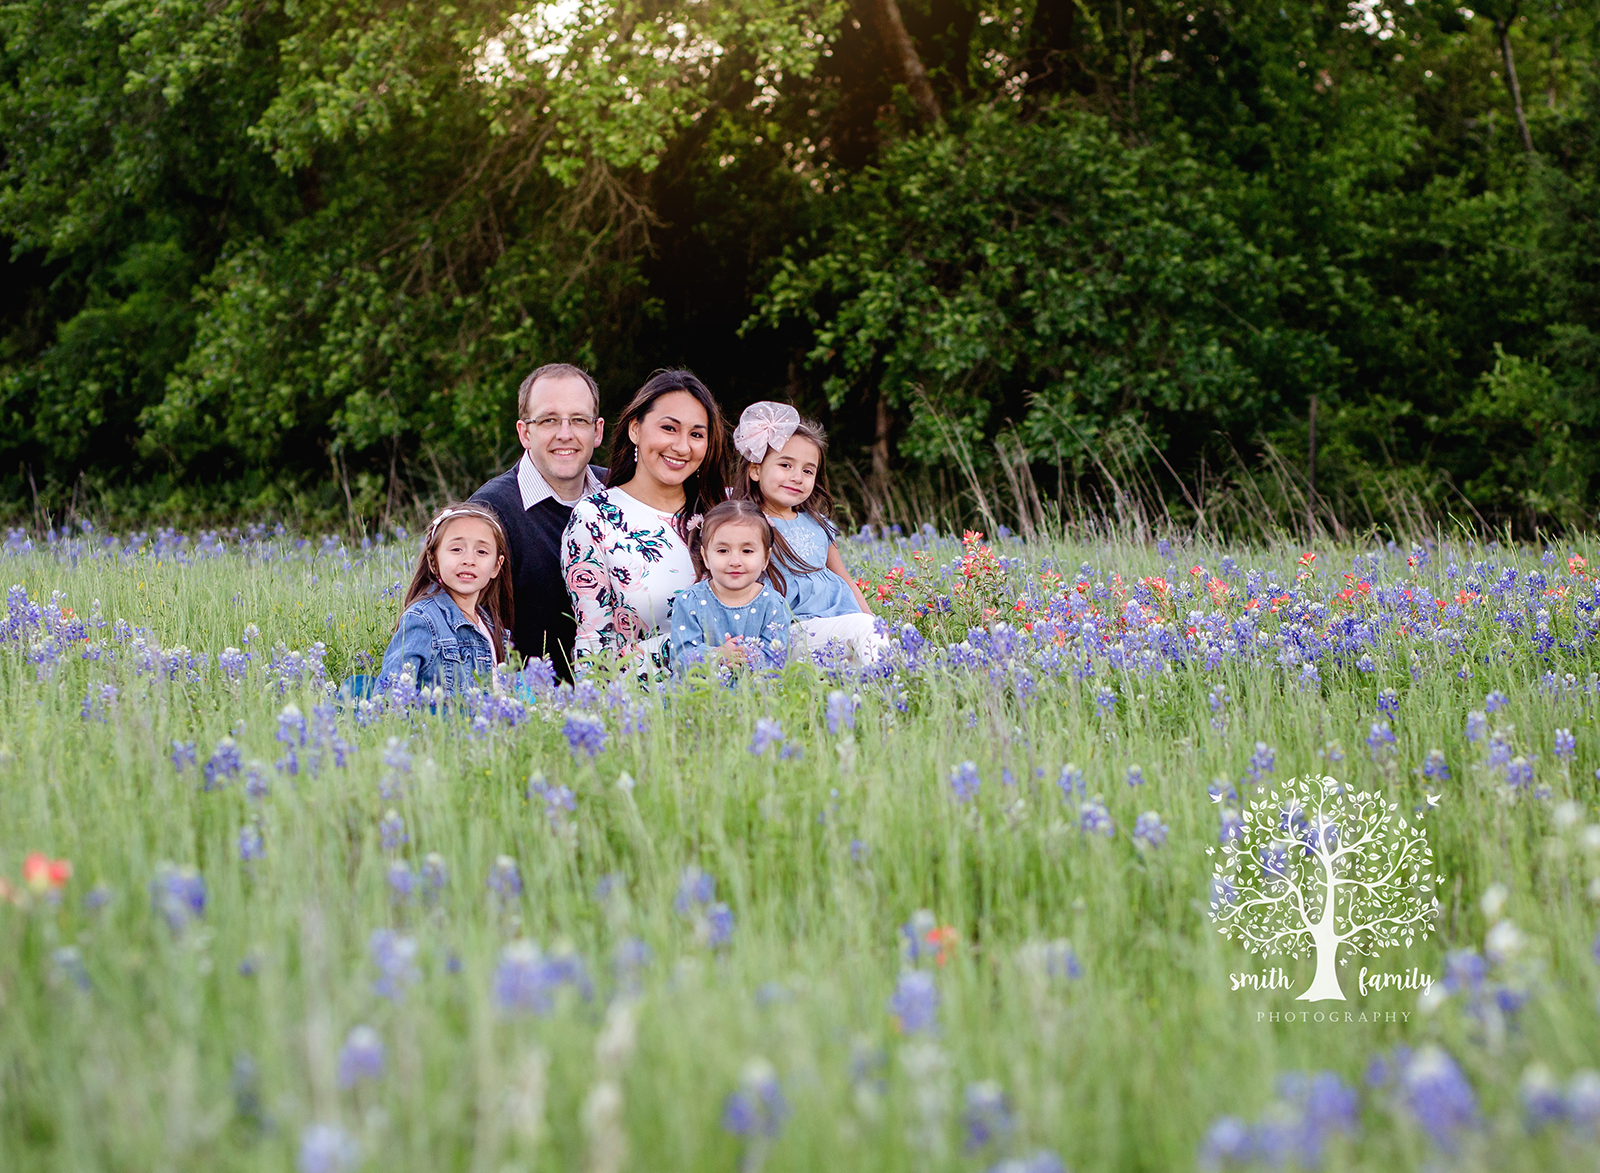 thompson-bluebonnet-session-smith-family-photography